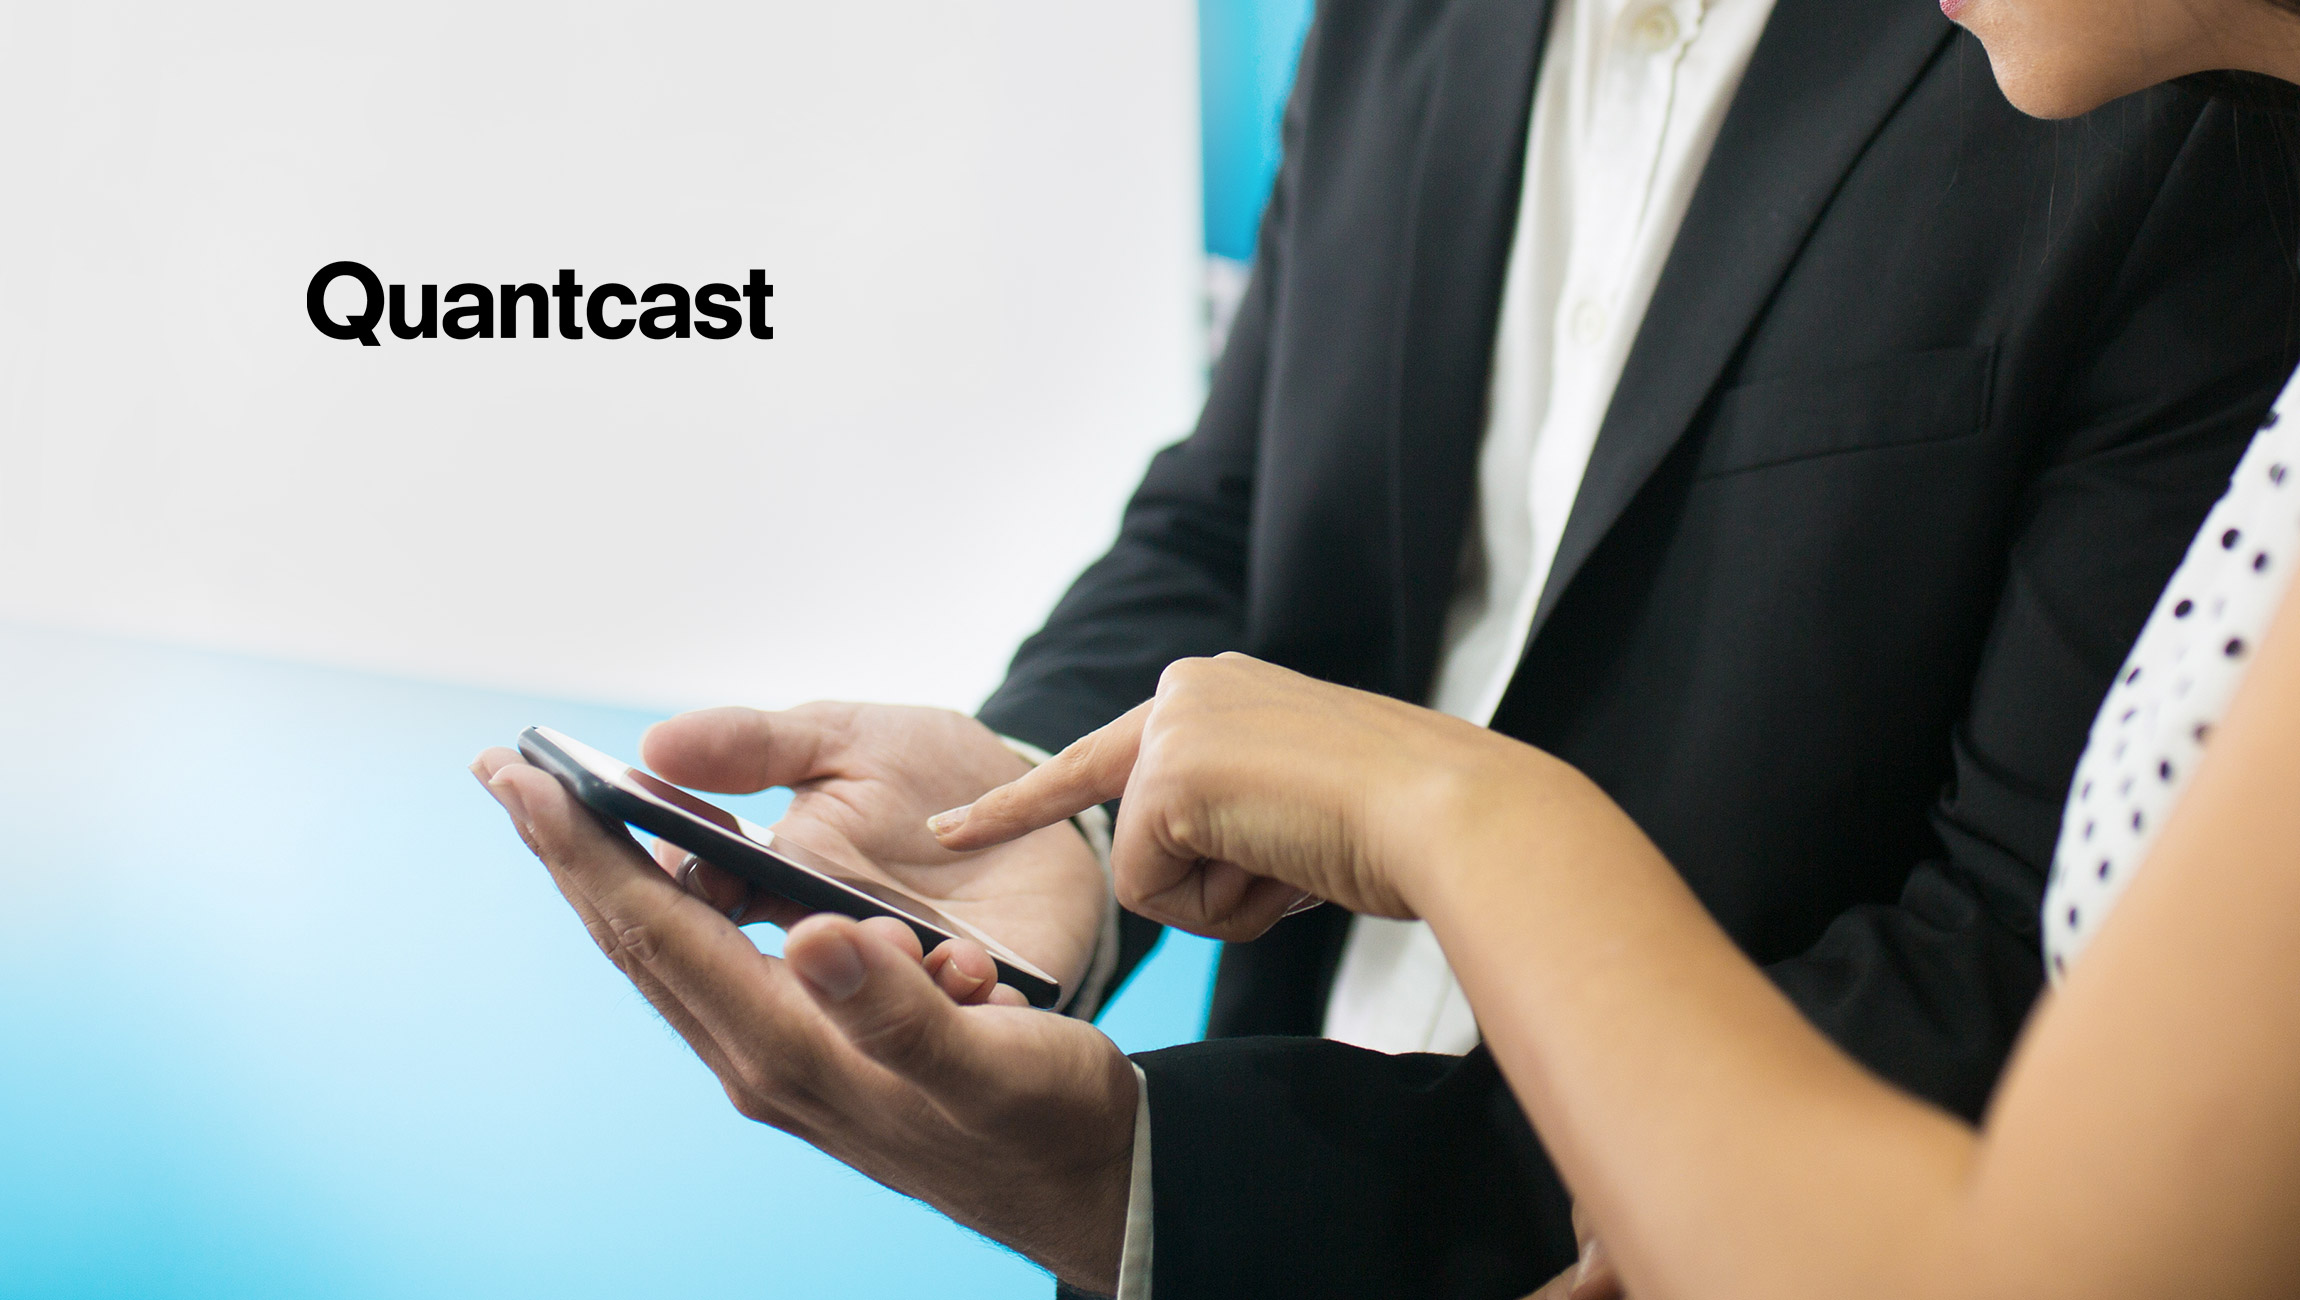 Quantcast Continues Asia Growth with Appointment of Regional Head Malaysia